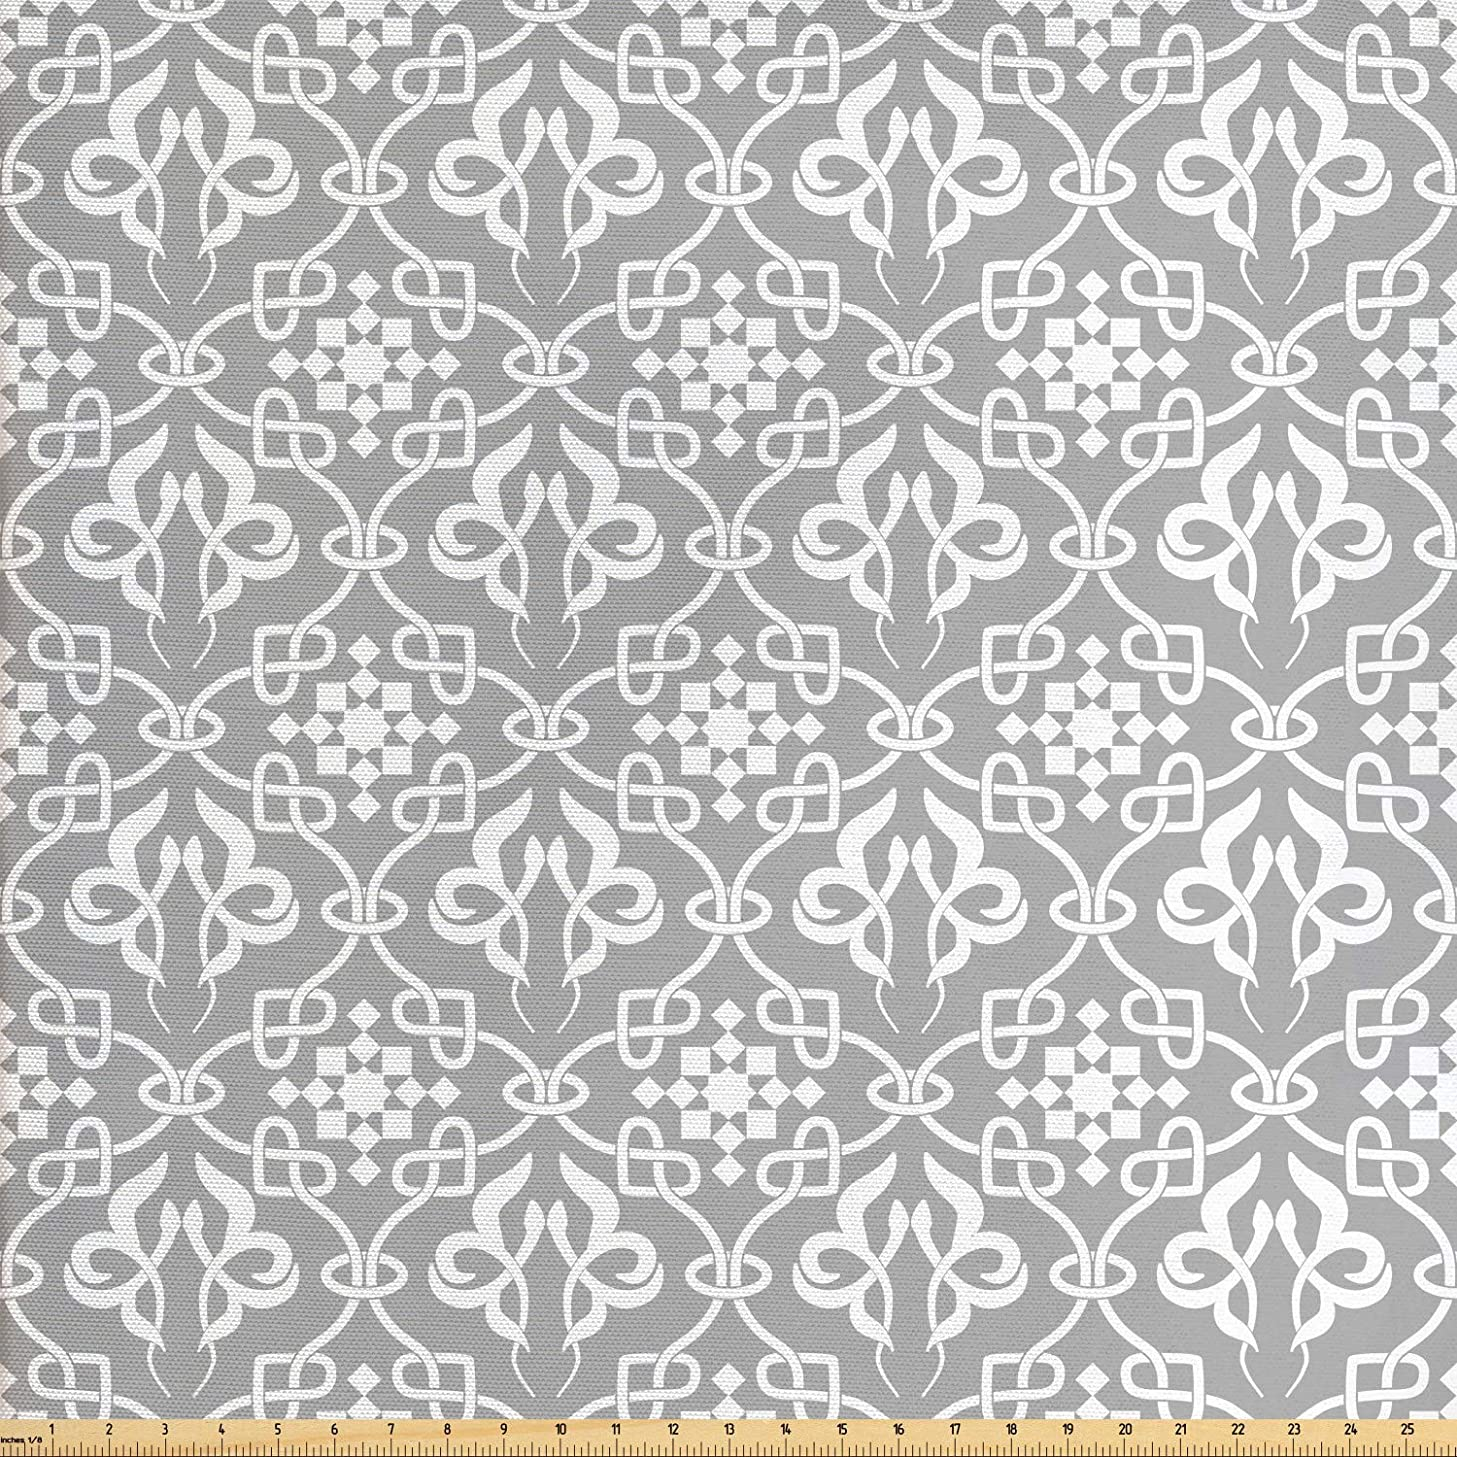 Ambesonne Irish Fabric by The Yard, Royal Antique Floral Figures Curves Old Fashioned Style Ancient Folkloric Tile, Decorative Fabric for Upholstery and Home Accents, 2 Yards, Grey and White